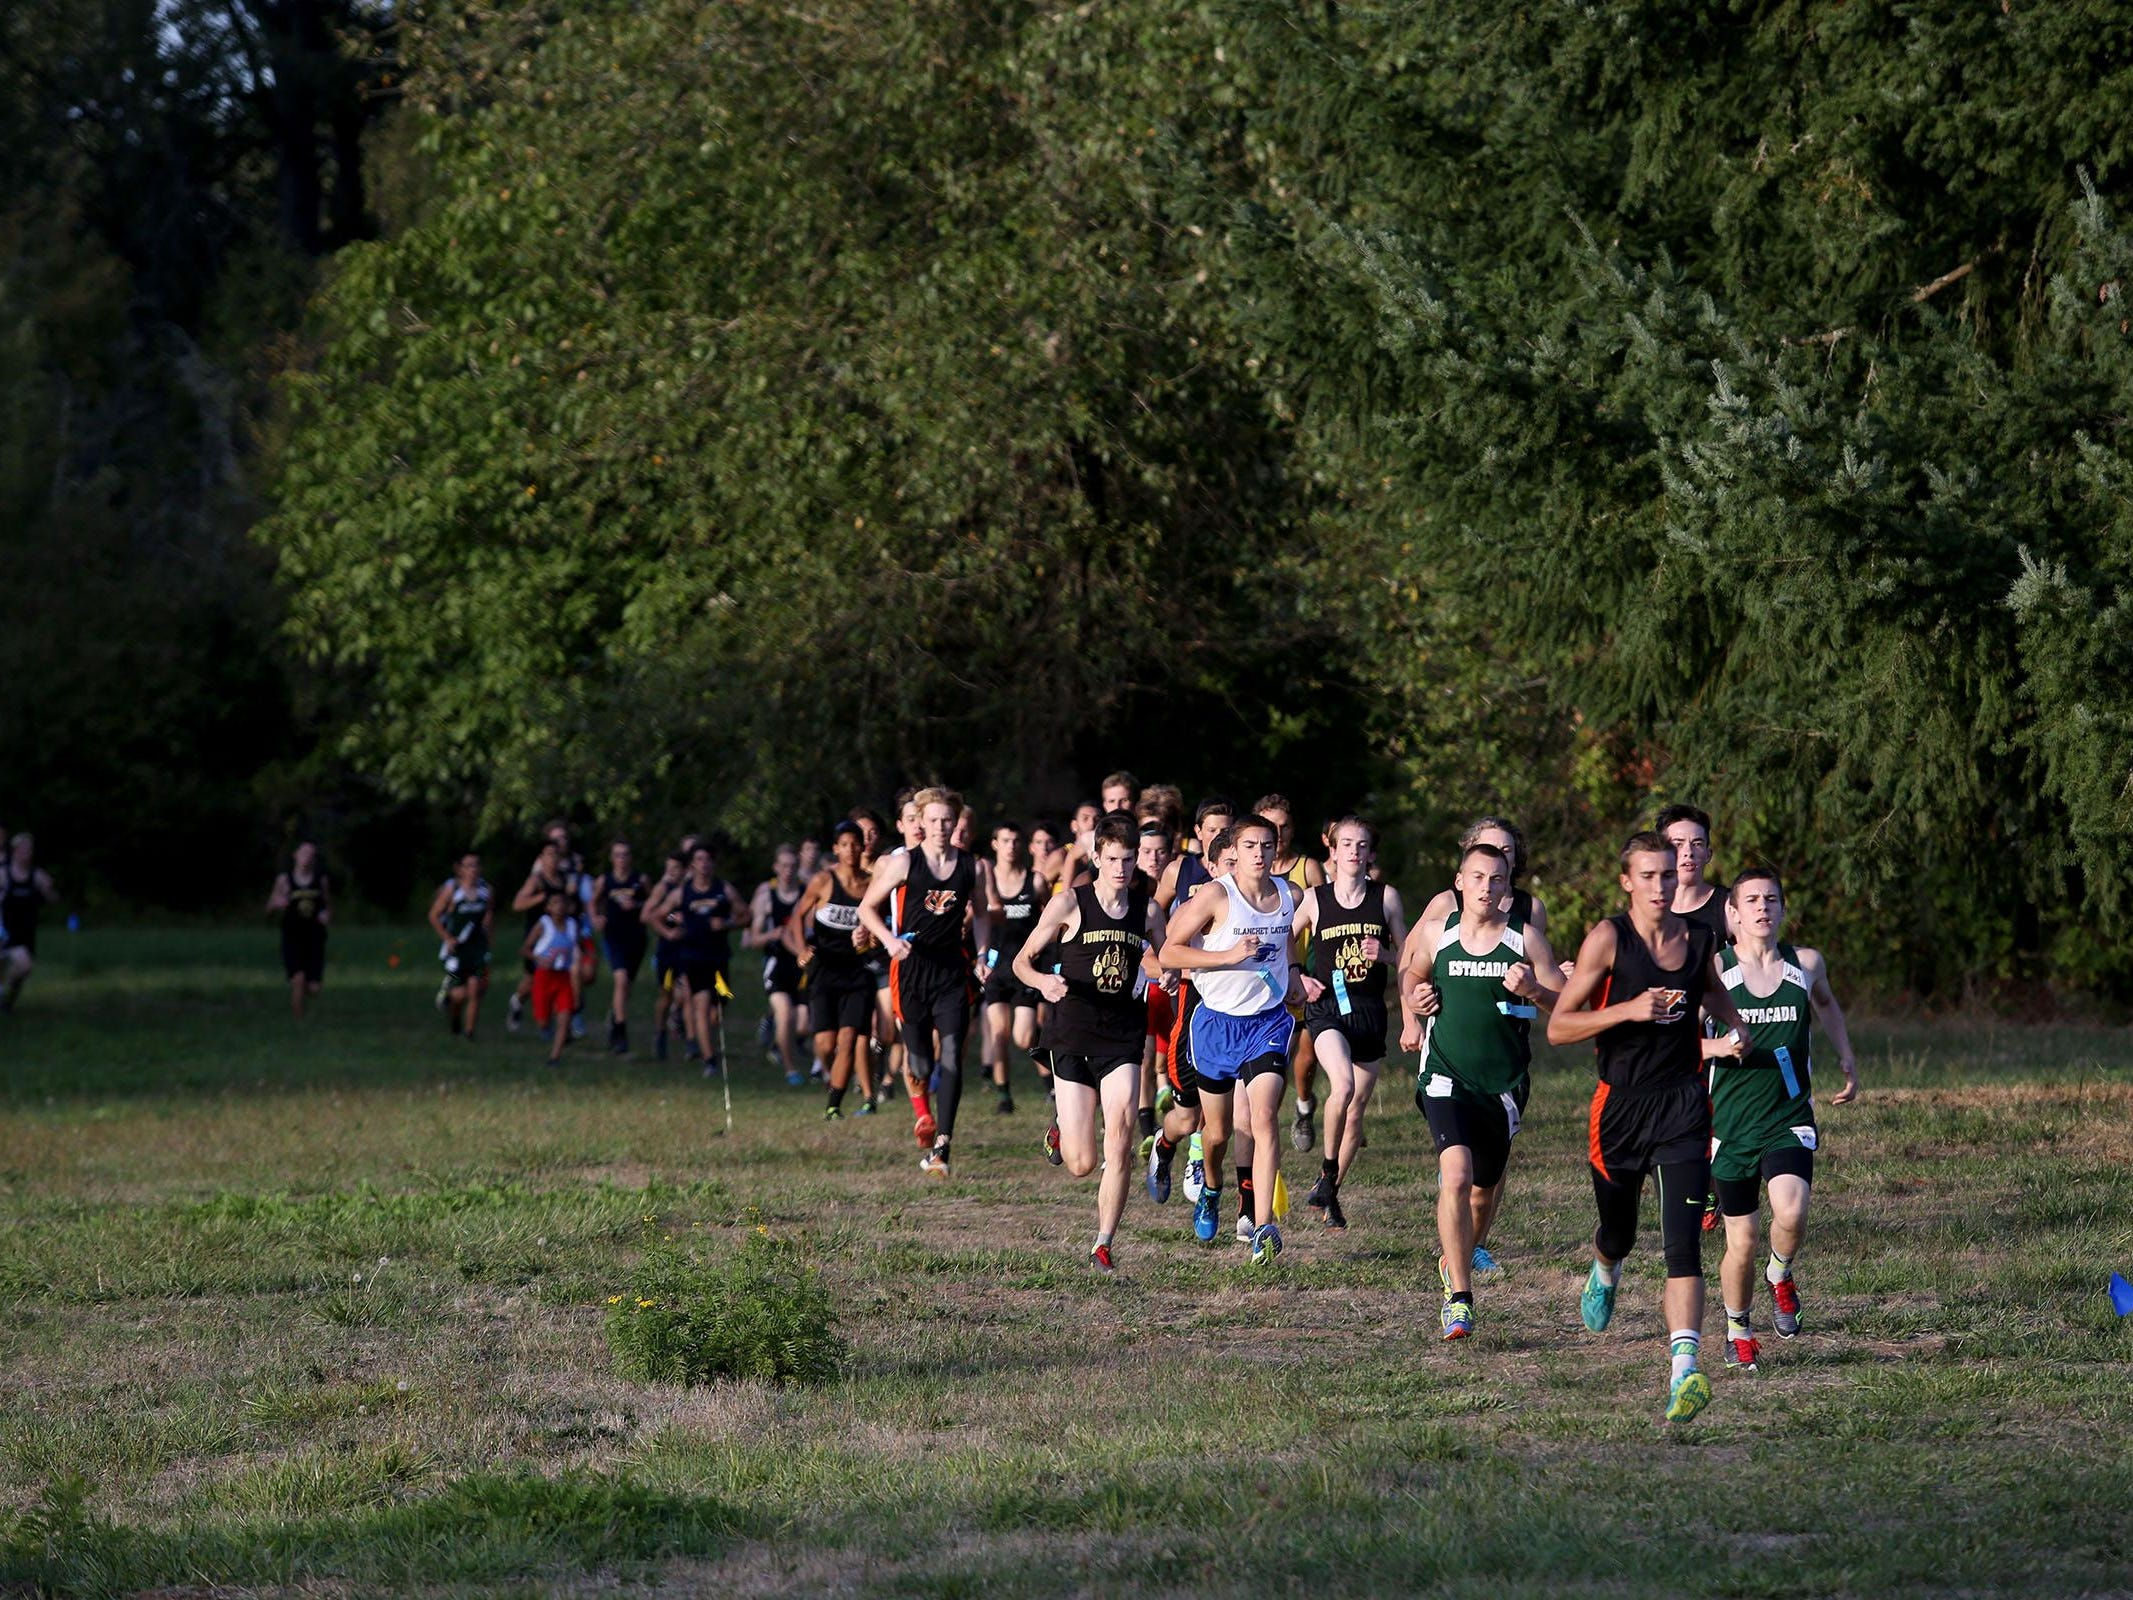 High School runners compete in the Stayton XC Invitational at Willamette Mission State Park on Wednesday, Sept. 23, 2015, Salem, Ore.